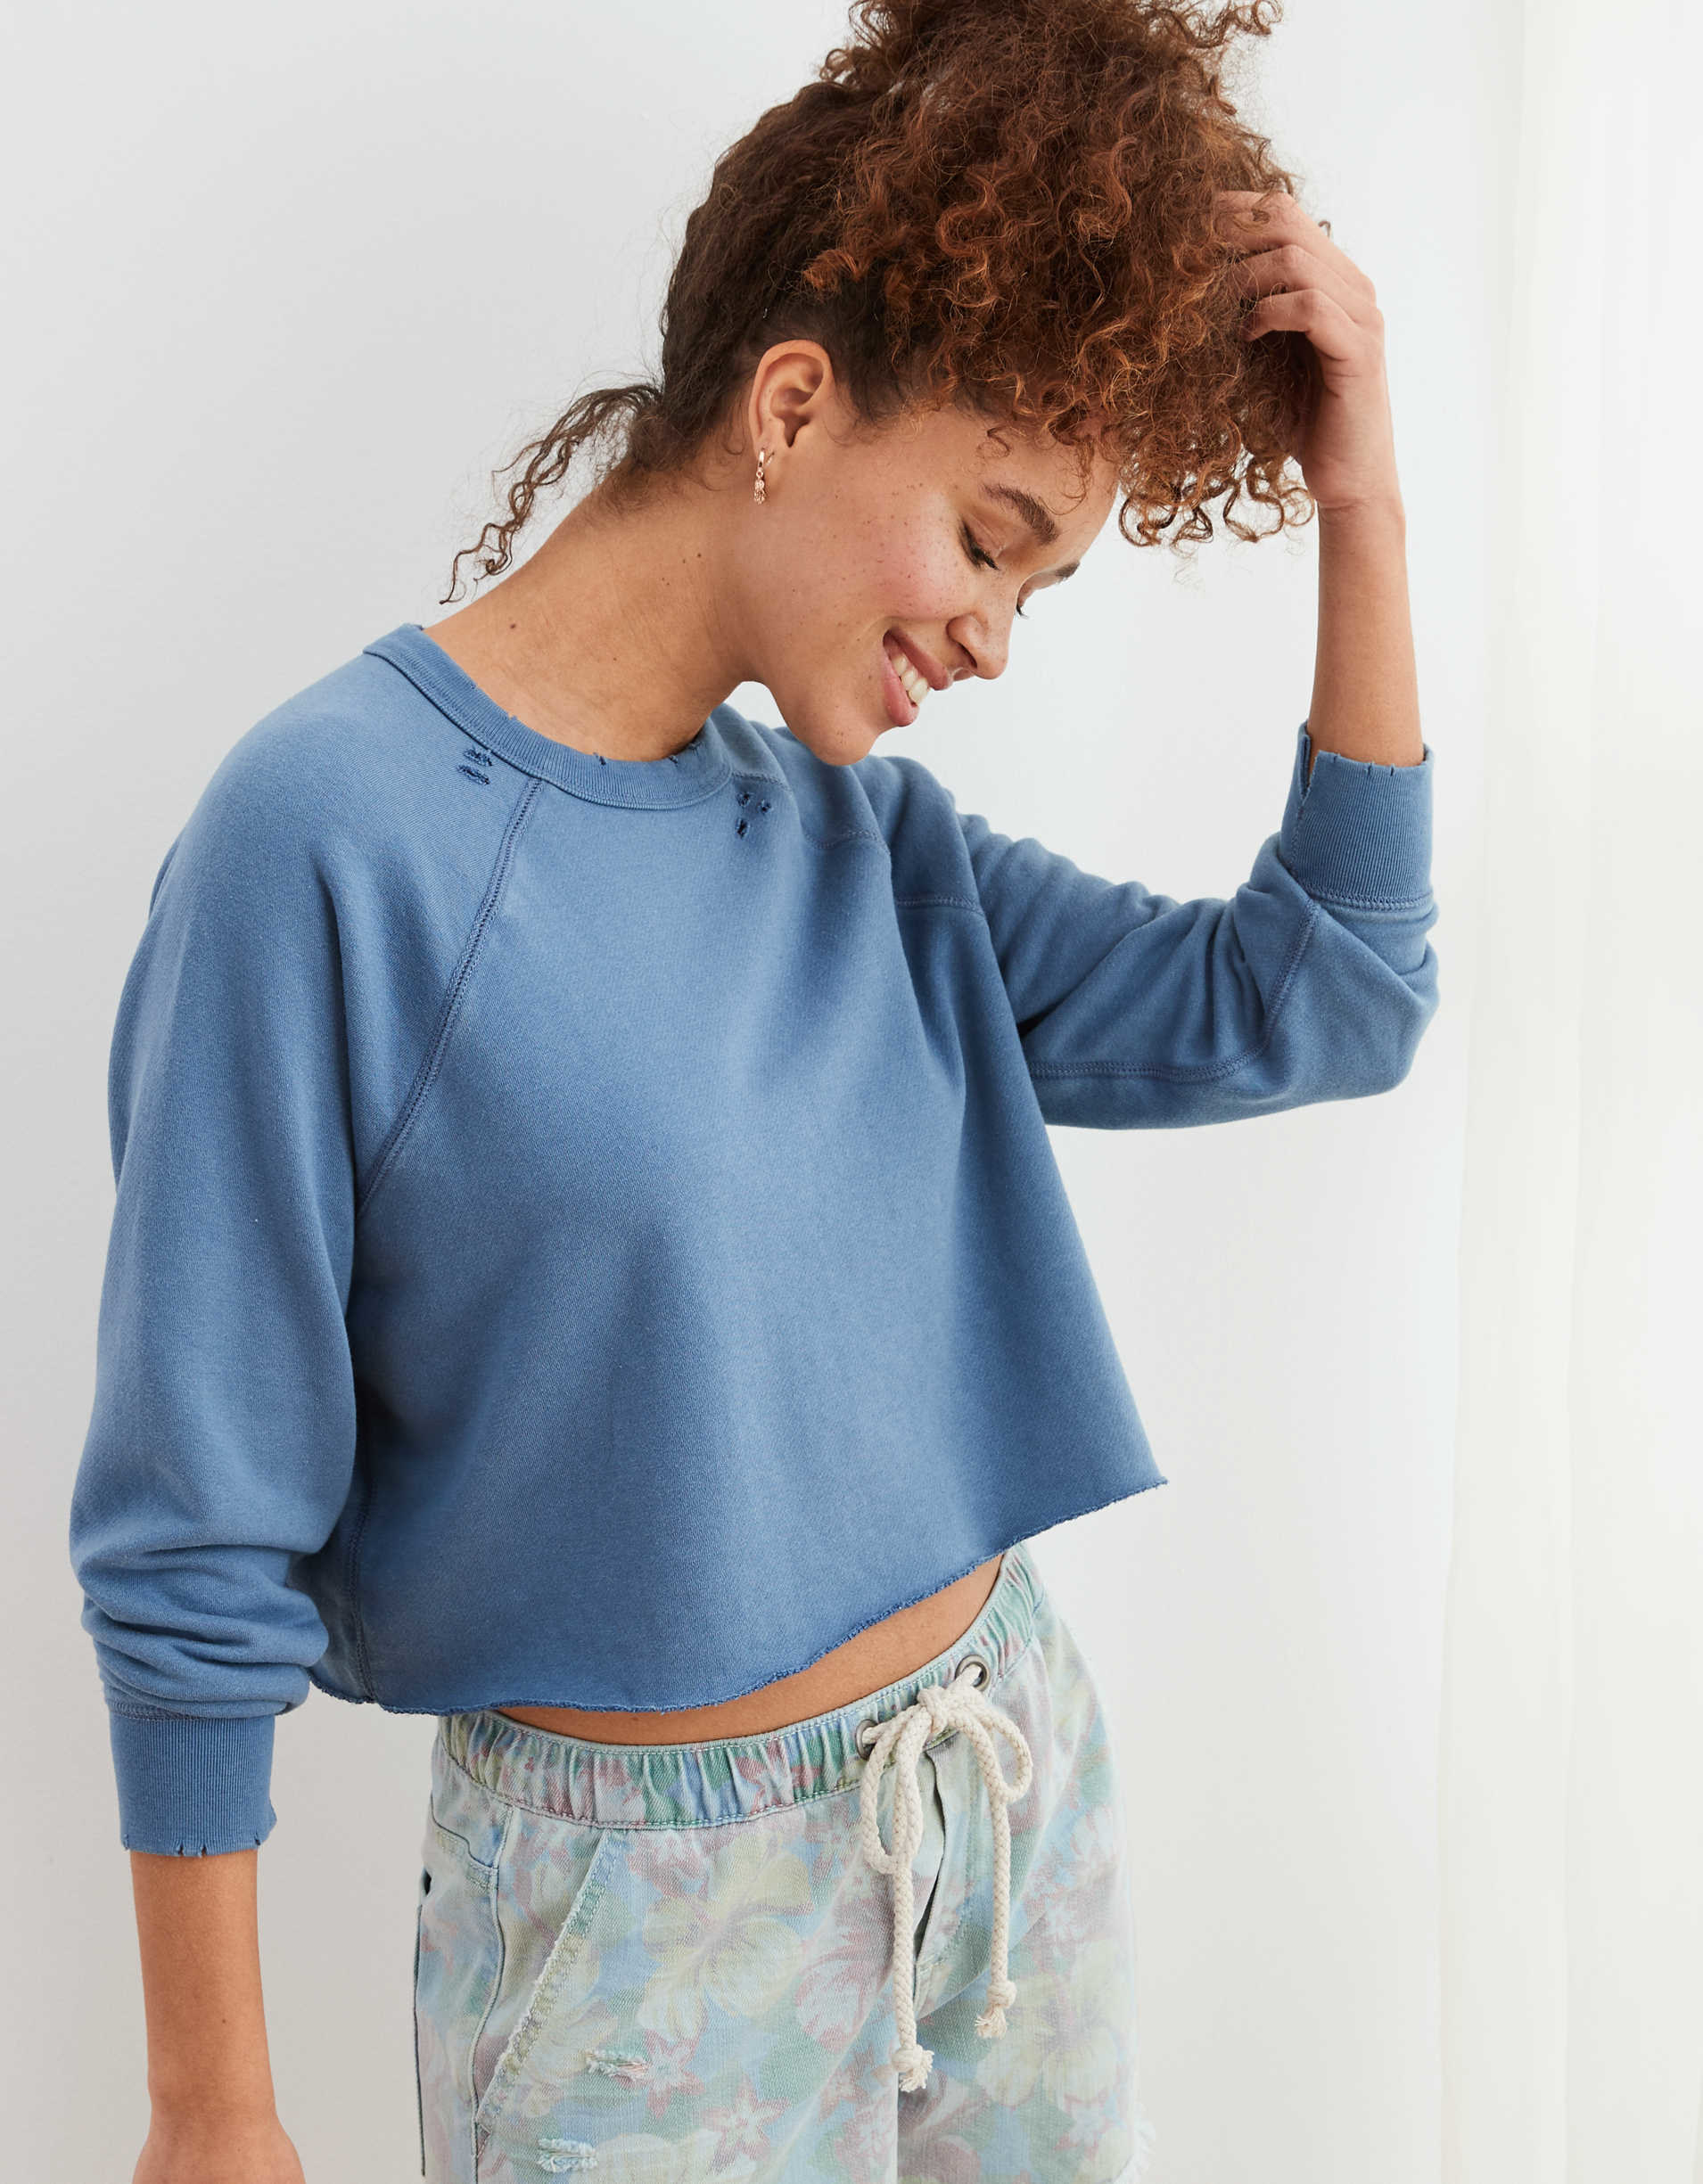 model in a slightly cropped blue crewneck sweatshirt with tiny holes near the beck and wrists